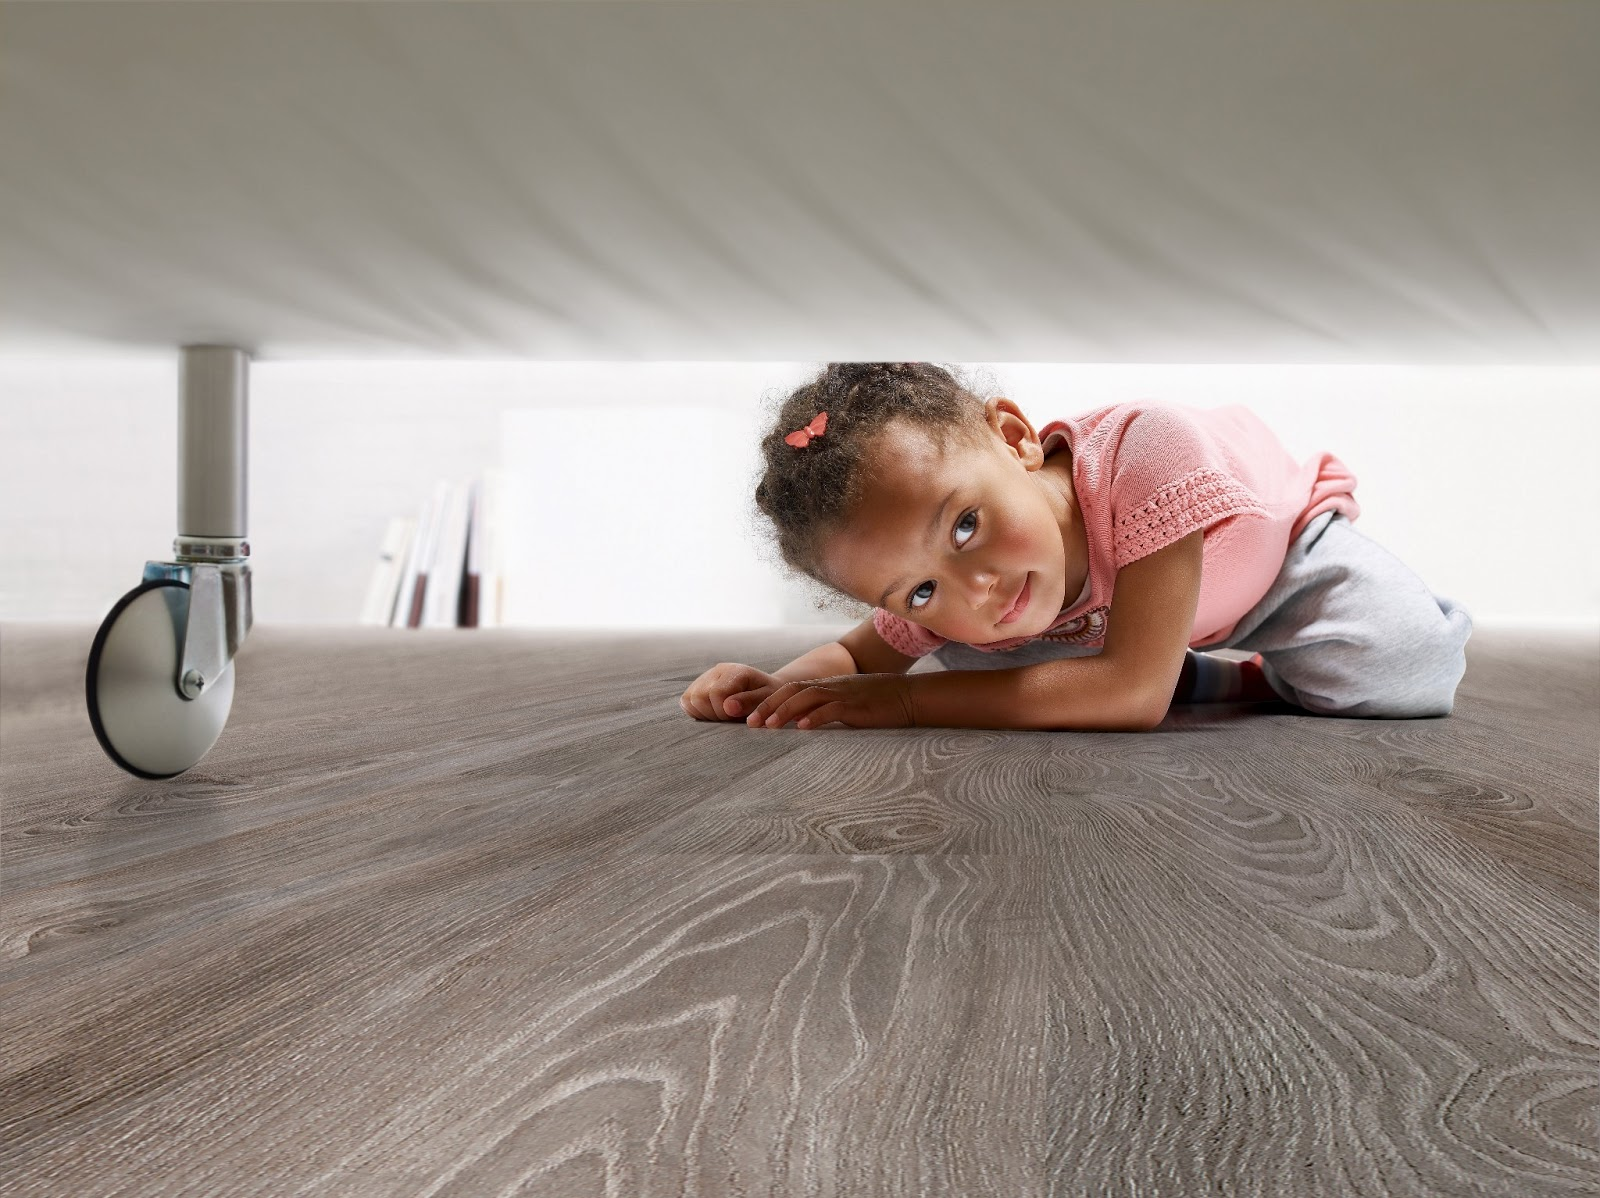 Therefore A Regular Sweep And An Occasional Wiping Down With Damp Cloth Should Just About Do The Trick To Keep Your Flooring Looking Brand New